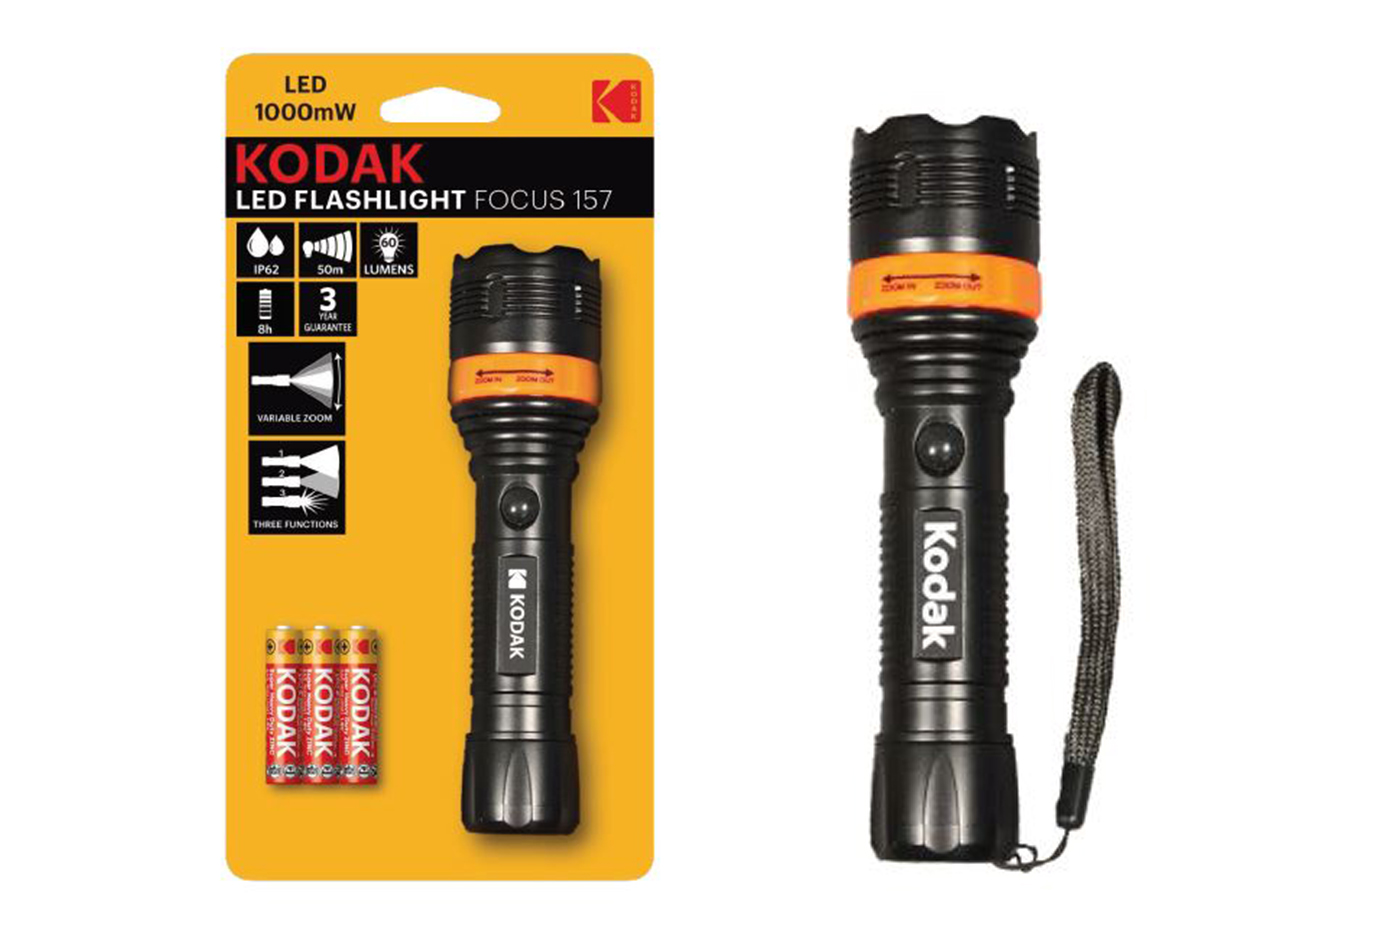 Kodak Torcia LED a luce variabile 60 lumen focus 157 flashlight 30413191